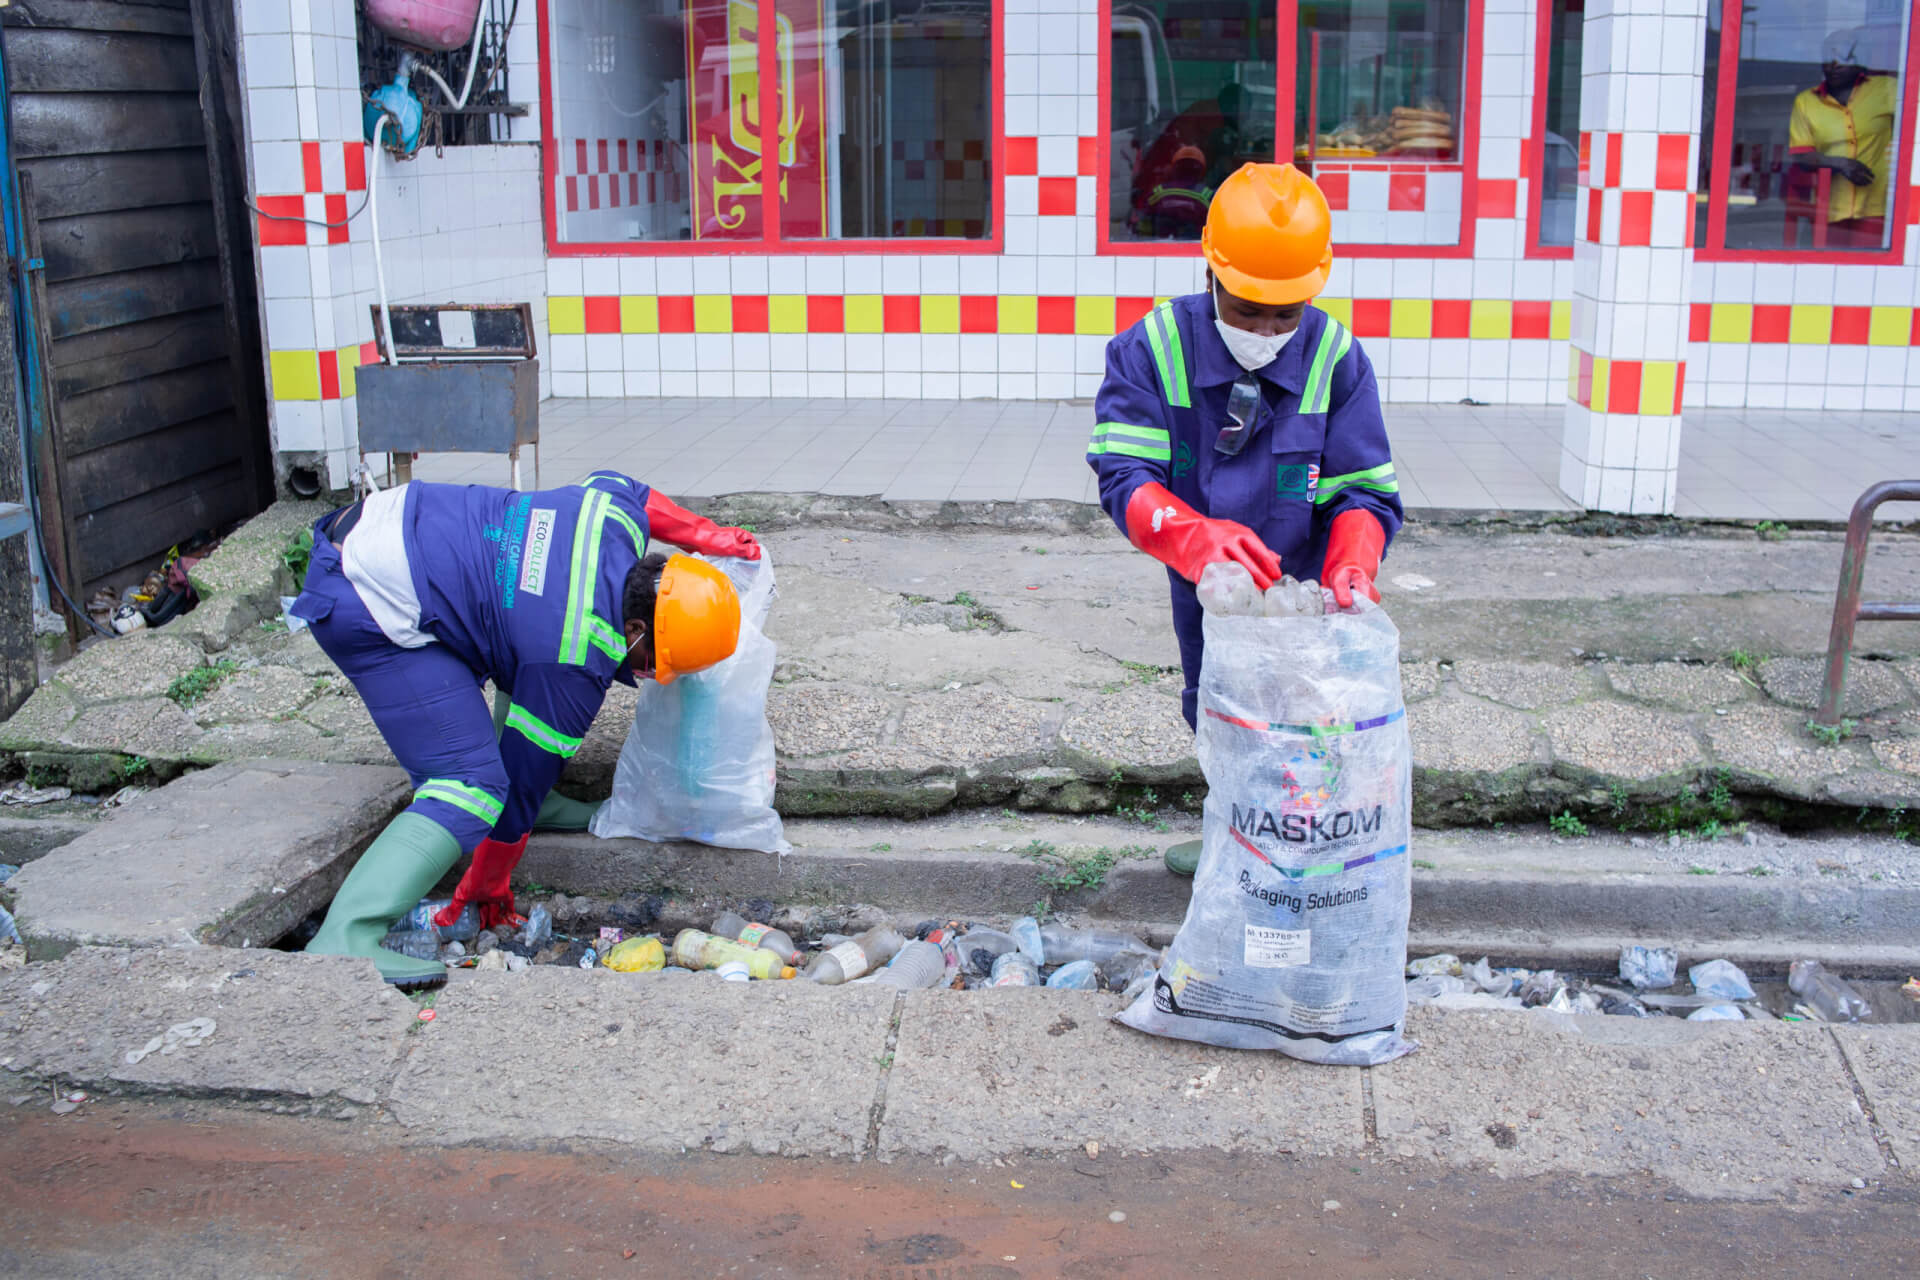 Removing plastic from drains helps reduce flood risk in the city